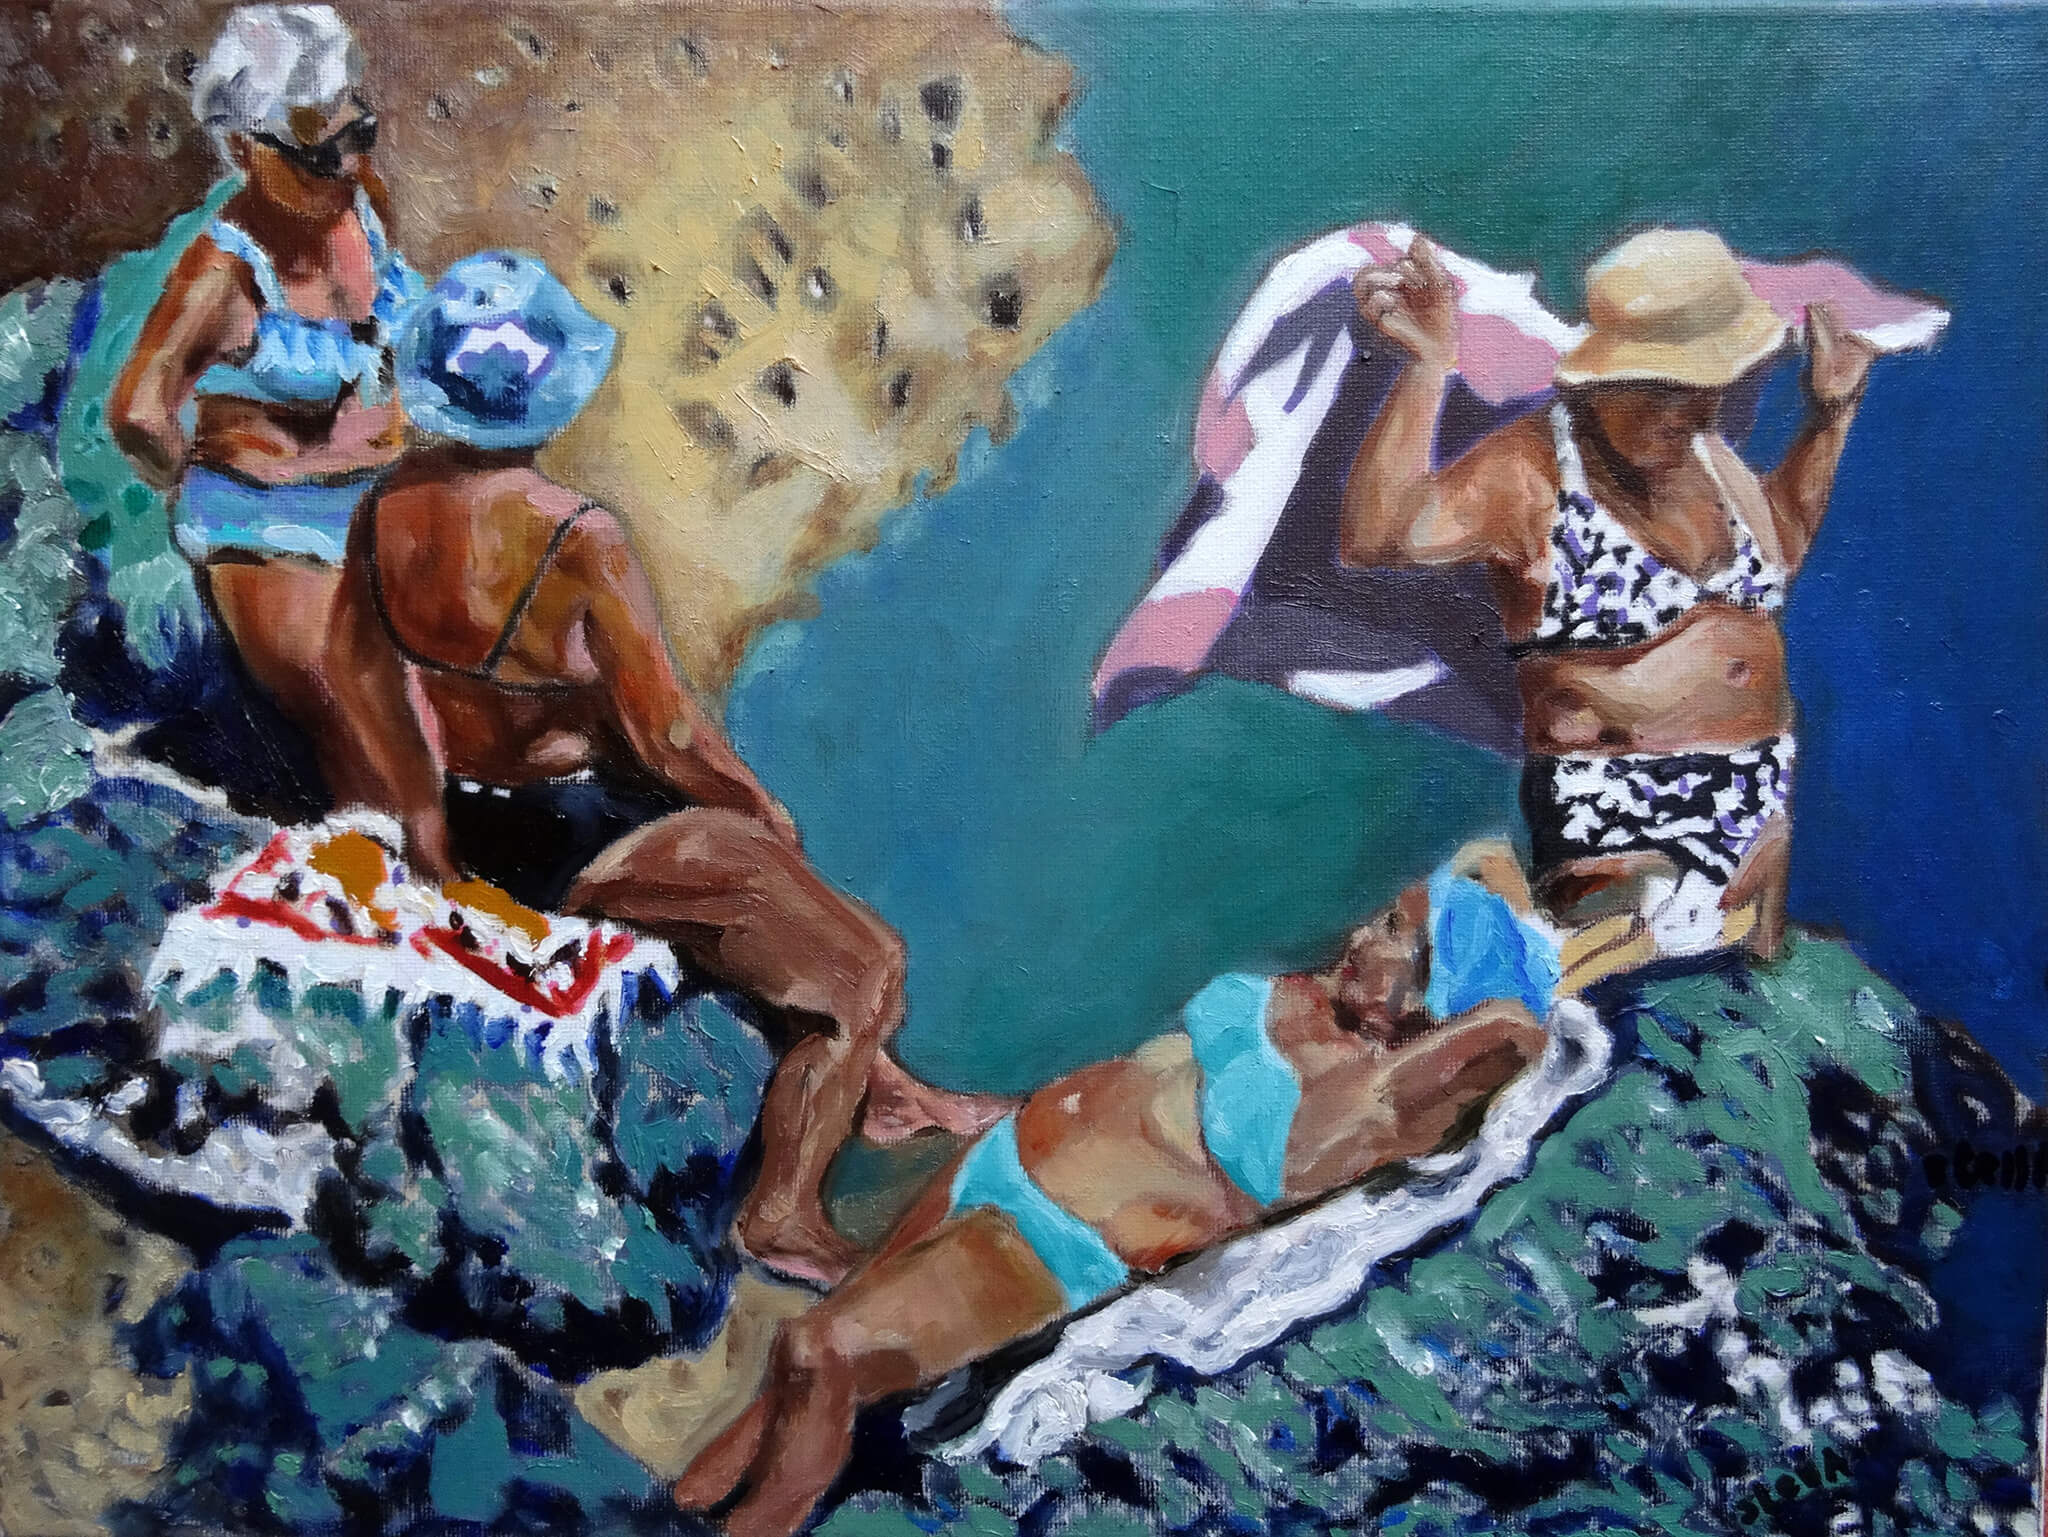 Ischia friends oil on canvas portrait artworks in bather series by Stella Tooth.